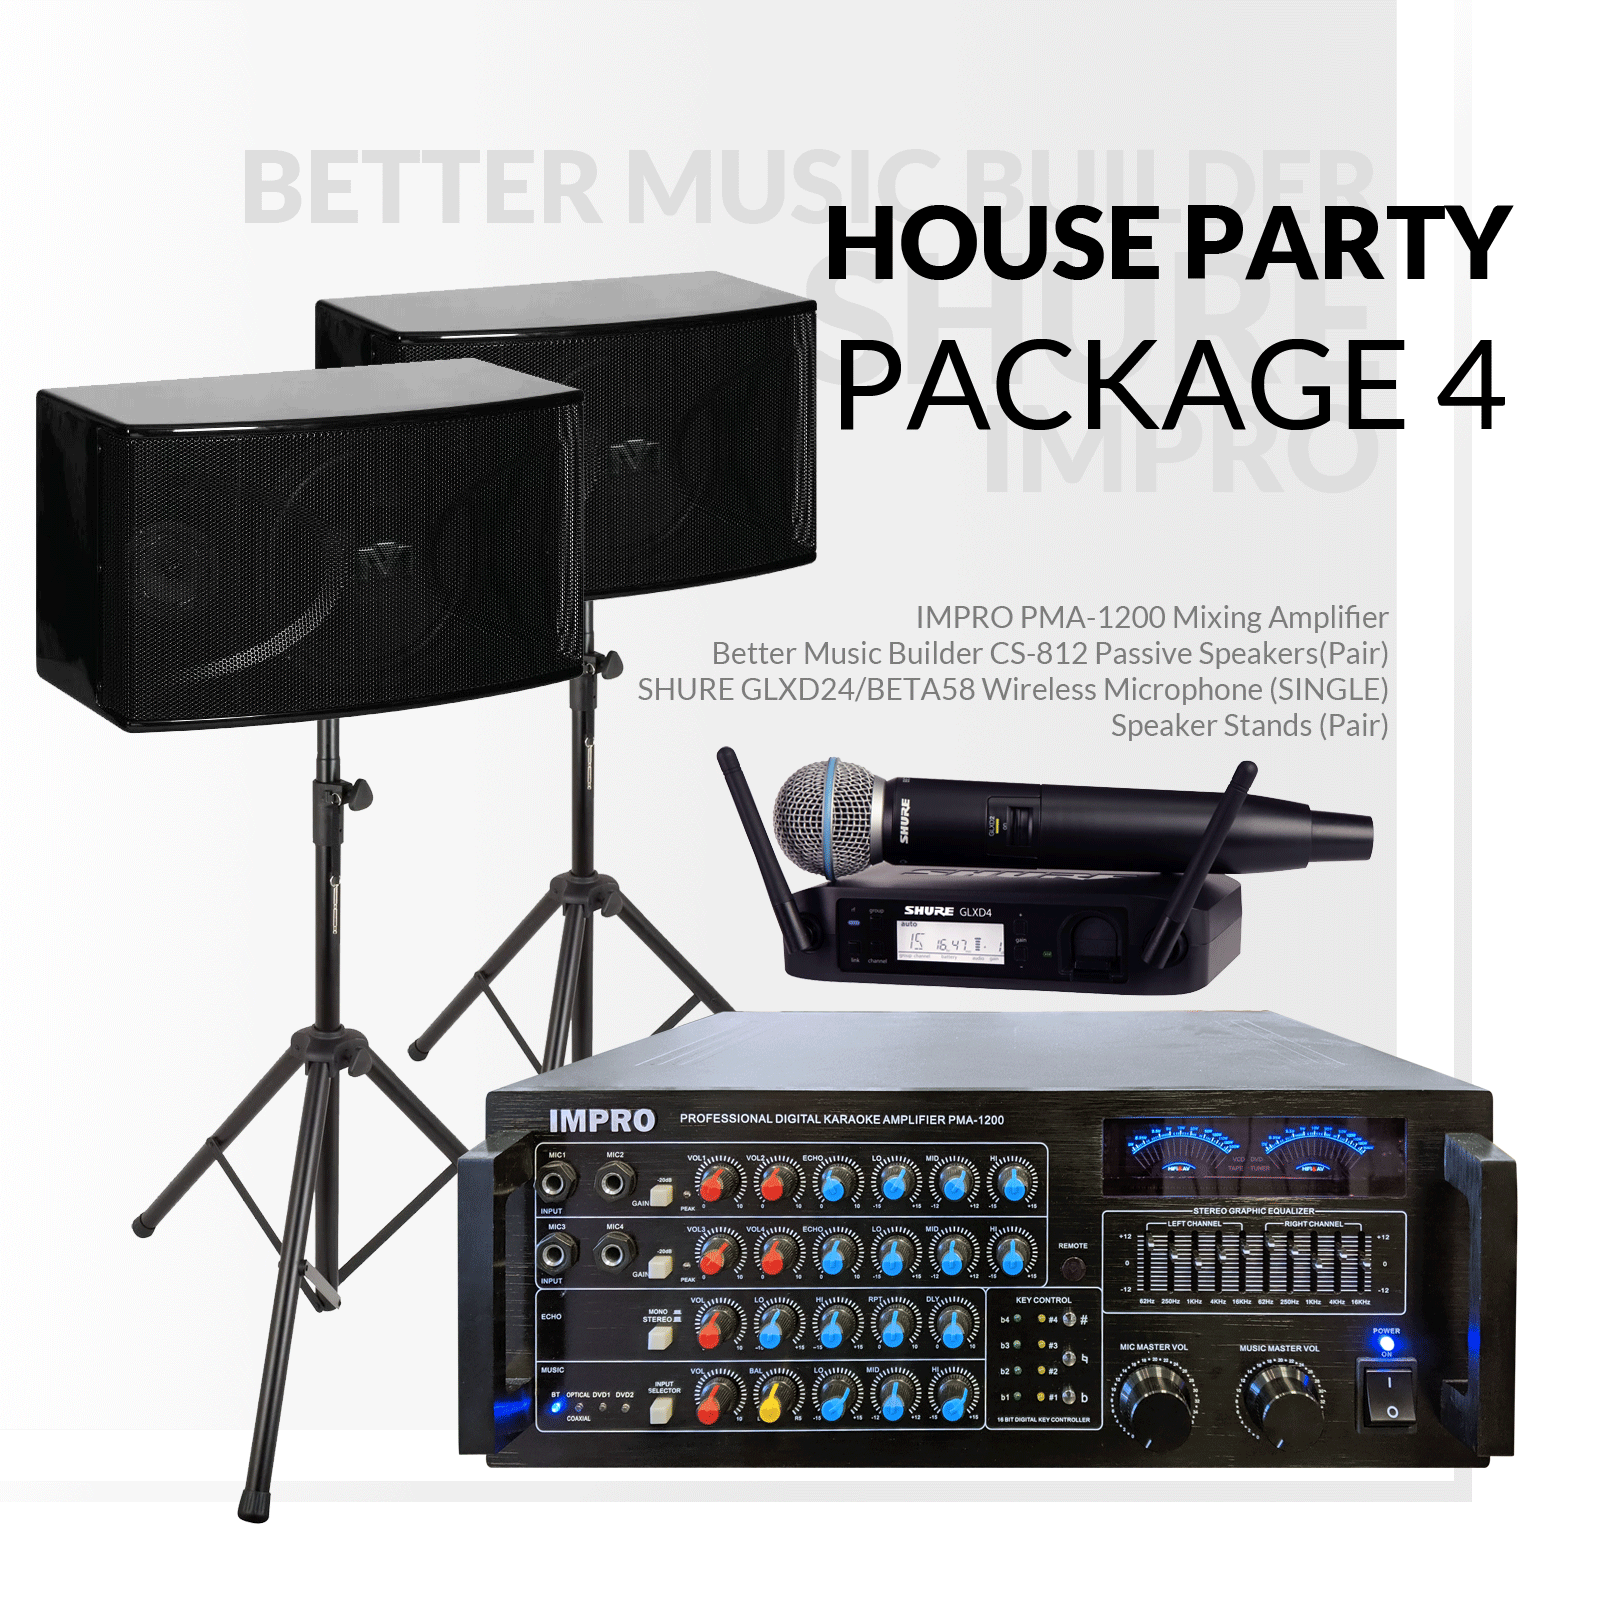 House Party Package #04: ImPro PMA-1200 + HD-888A (6TB) + BetterMusicBuilder CS-812 G3 + Stands + Shure GLX Series Microphone